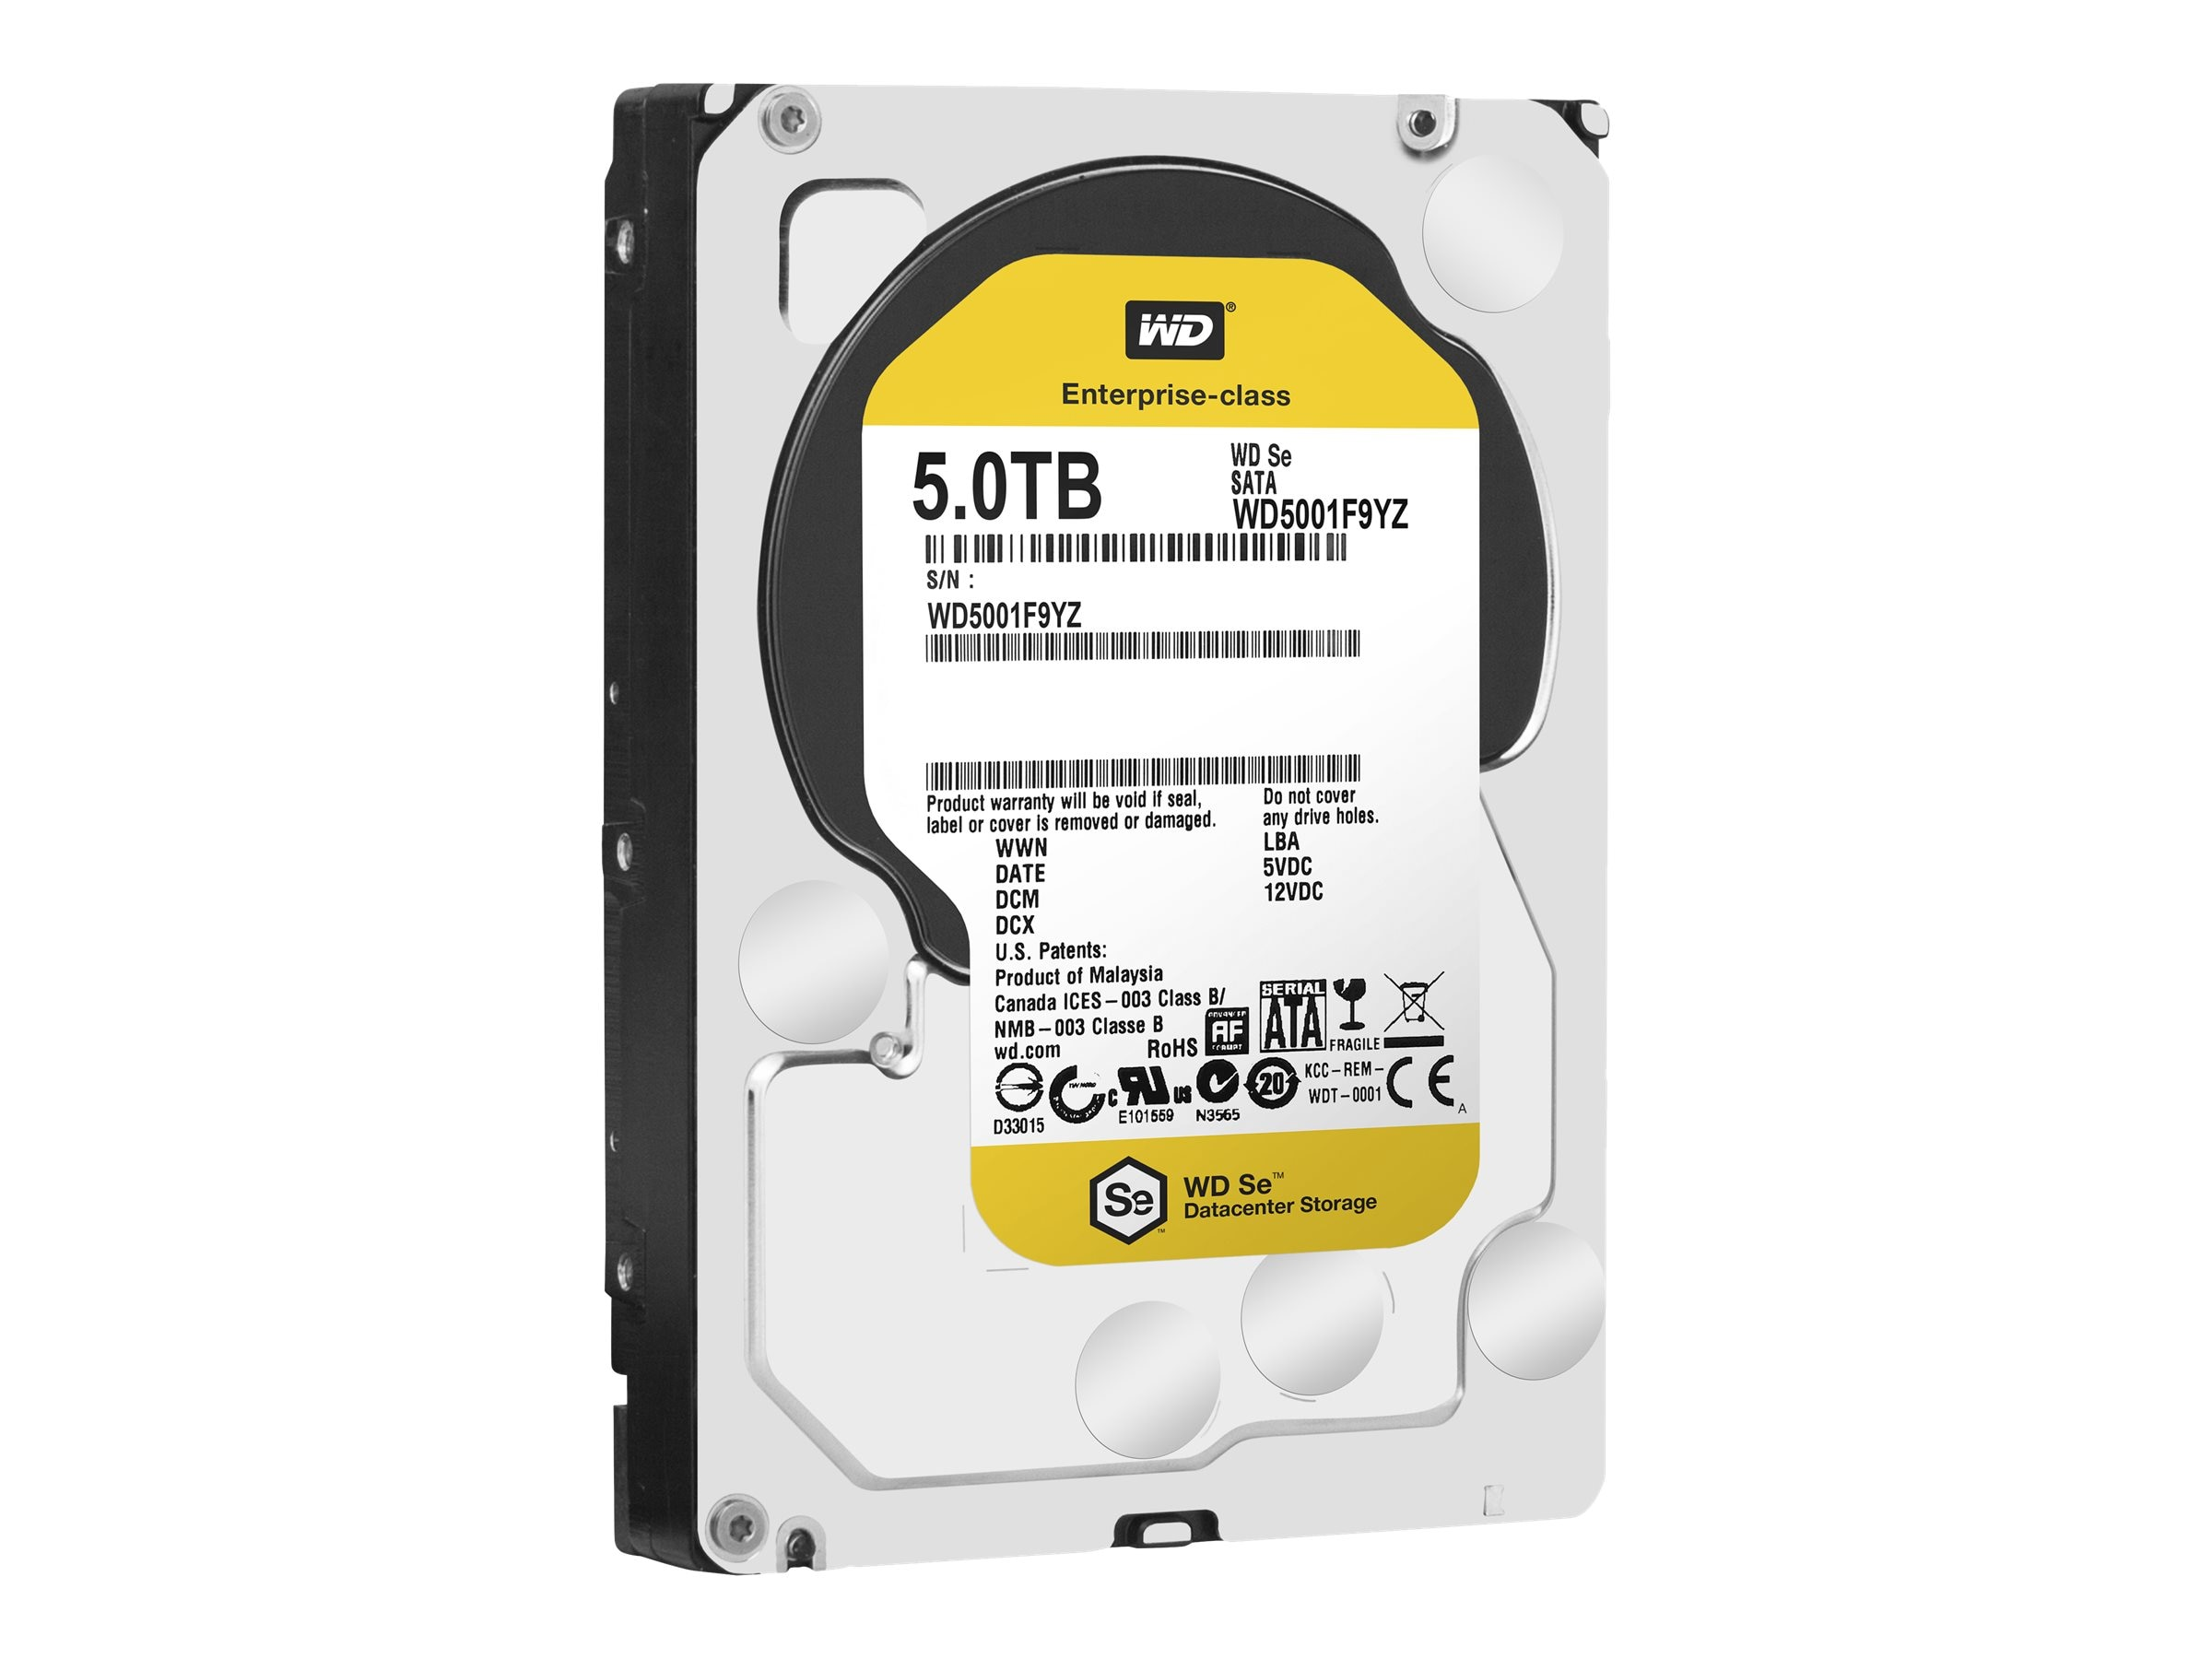 WD WD5001F9YZ Image 7